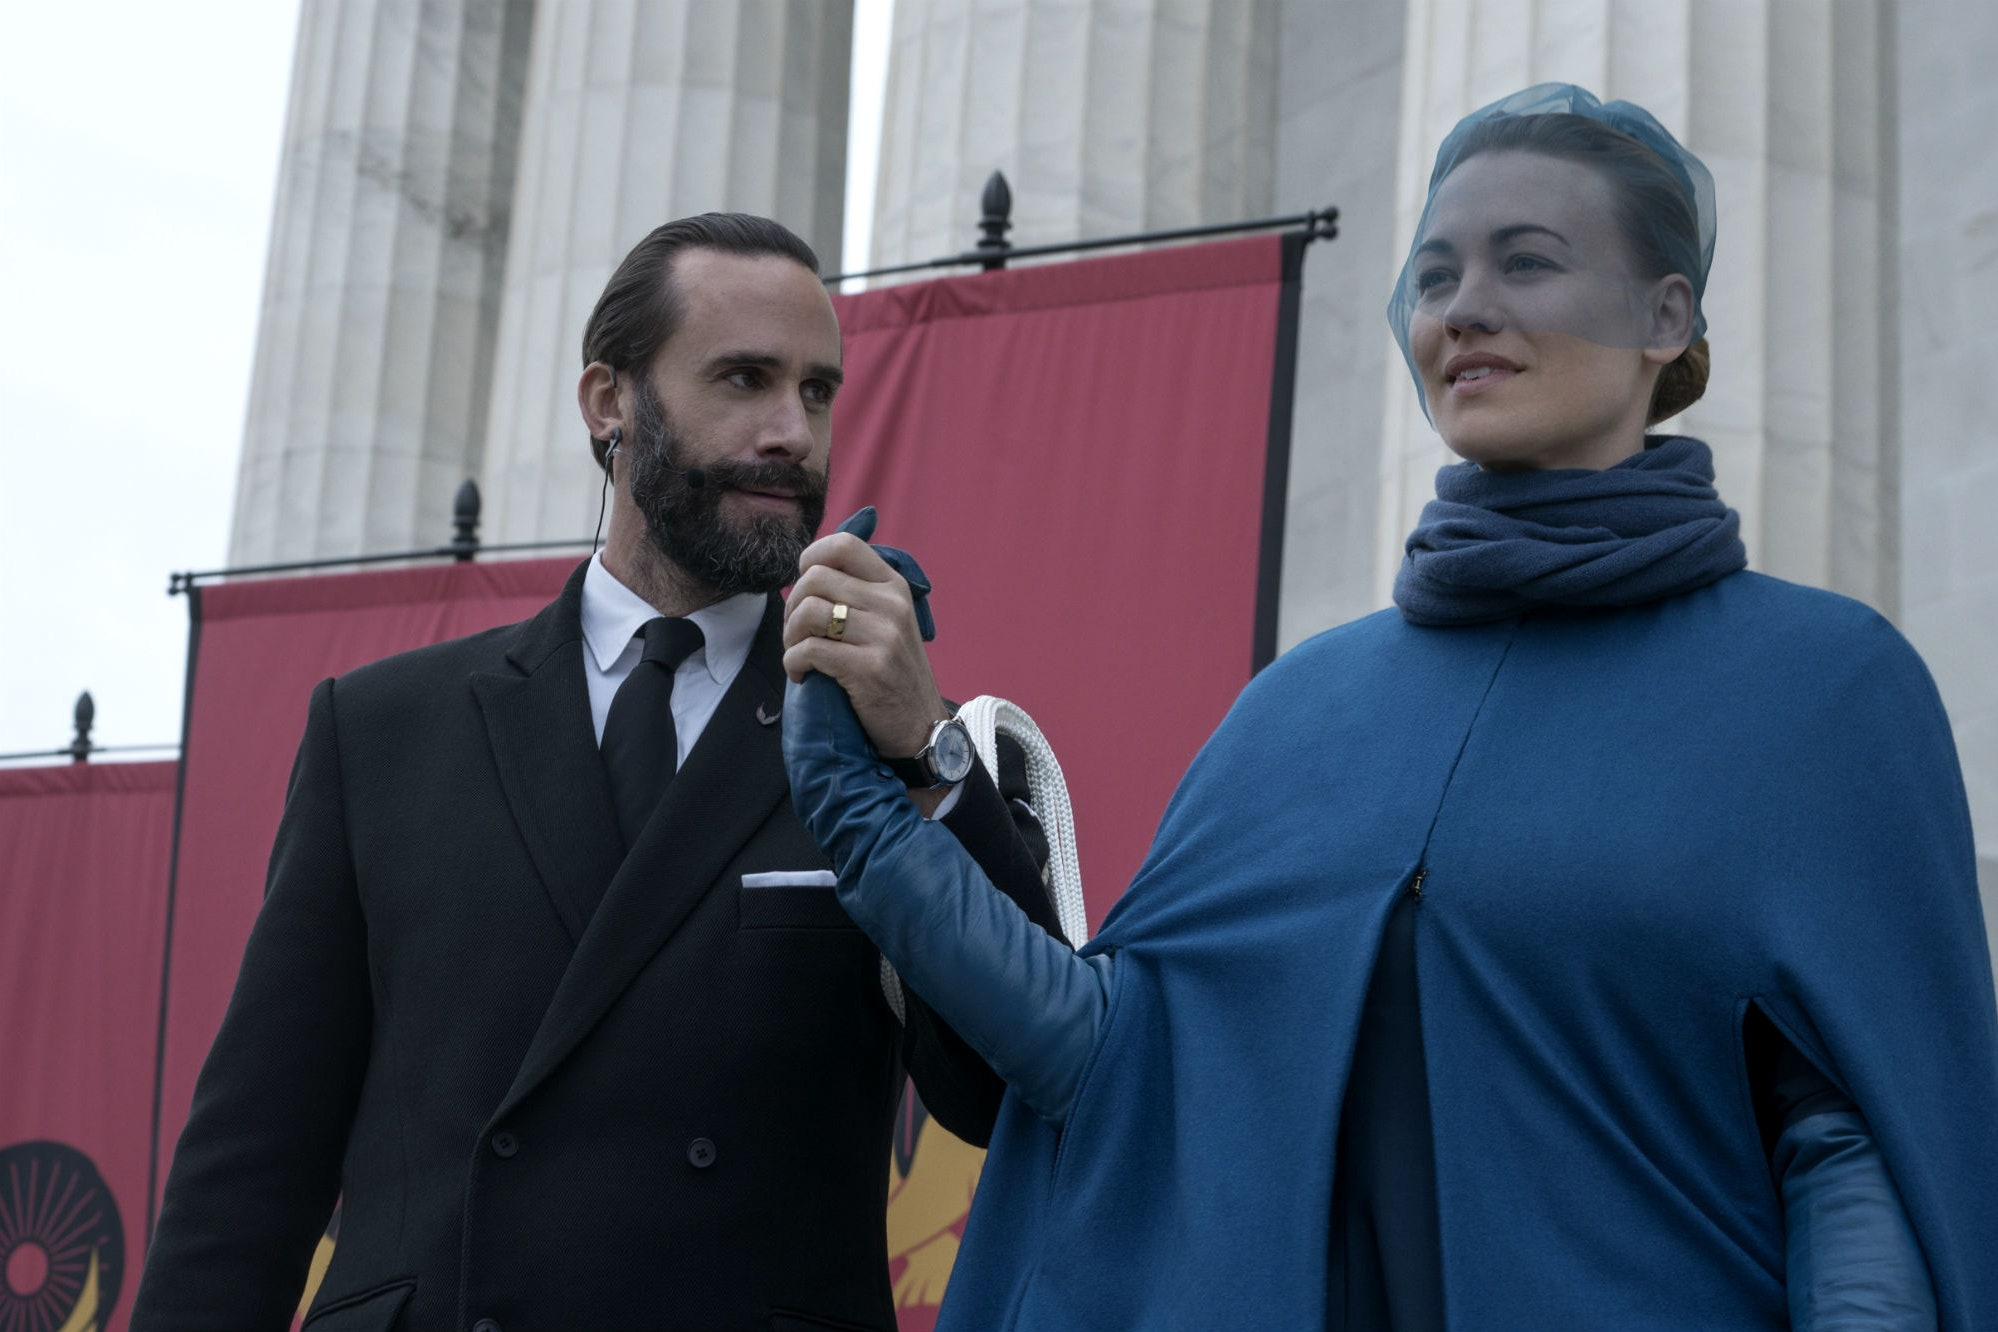 Here is how to watch The Handmaid's Tale legally